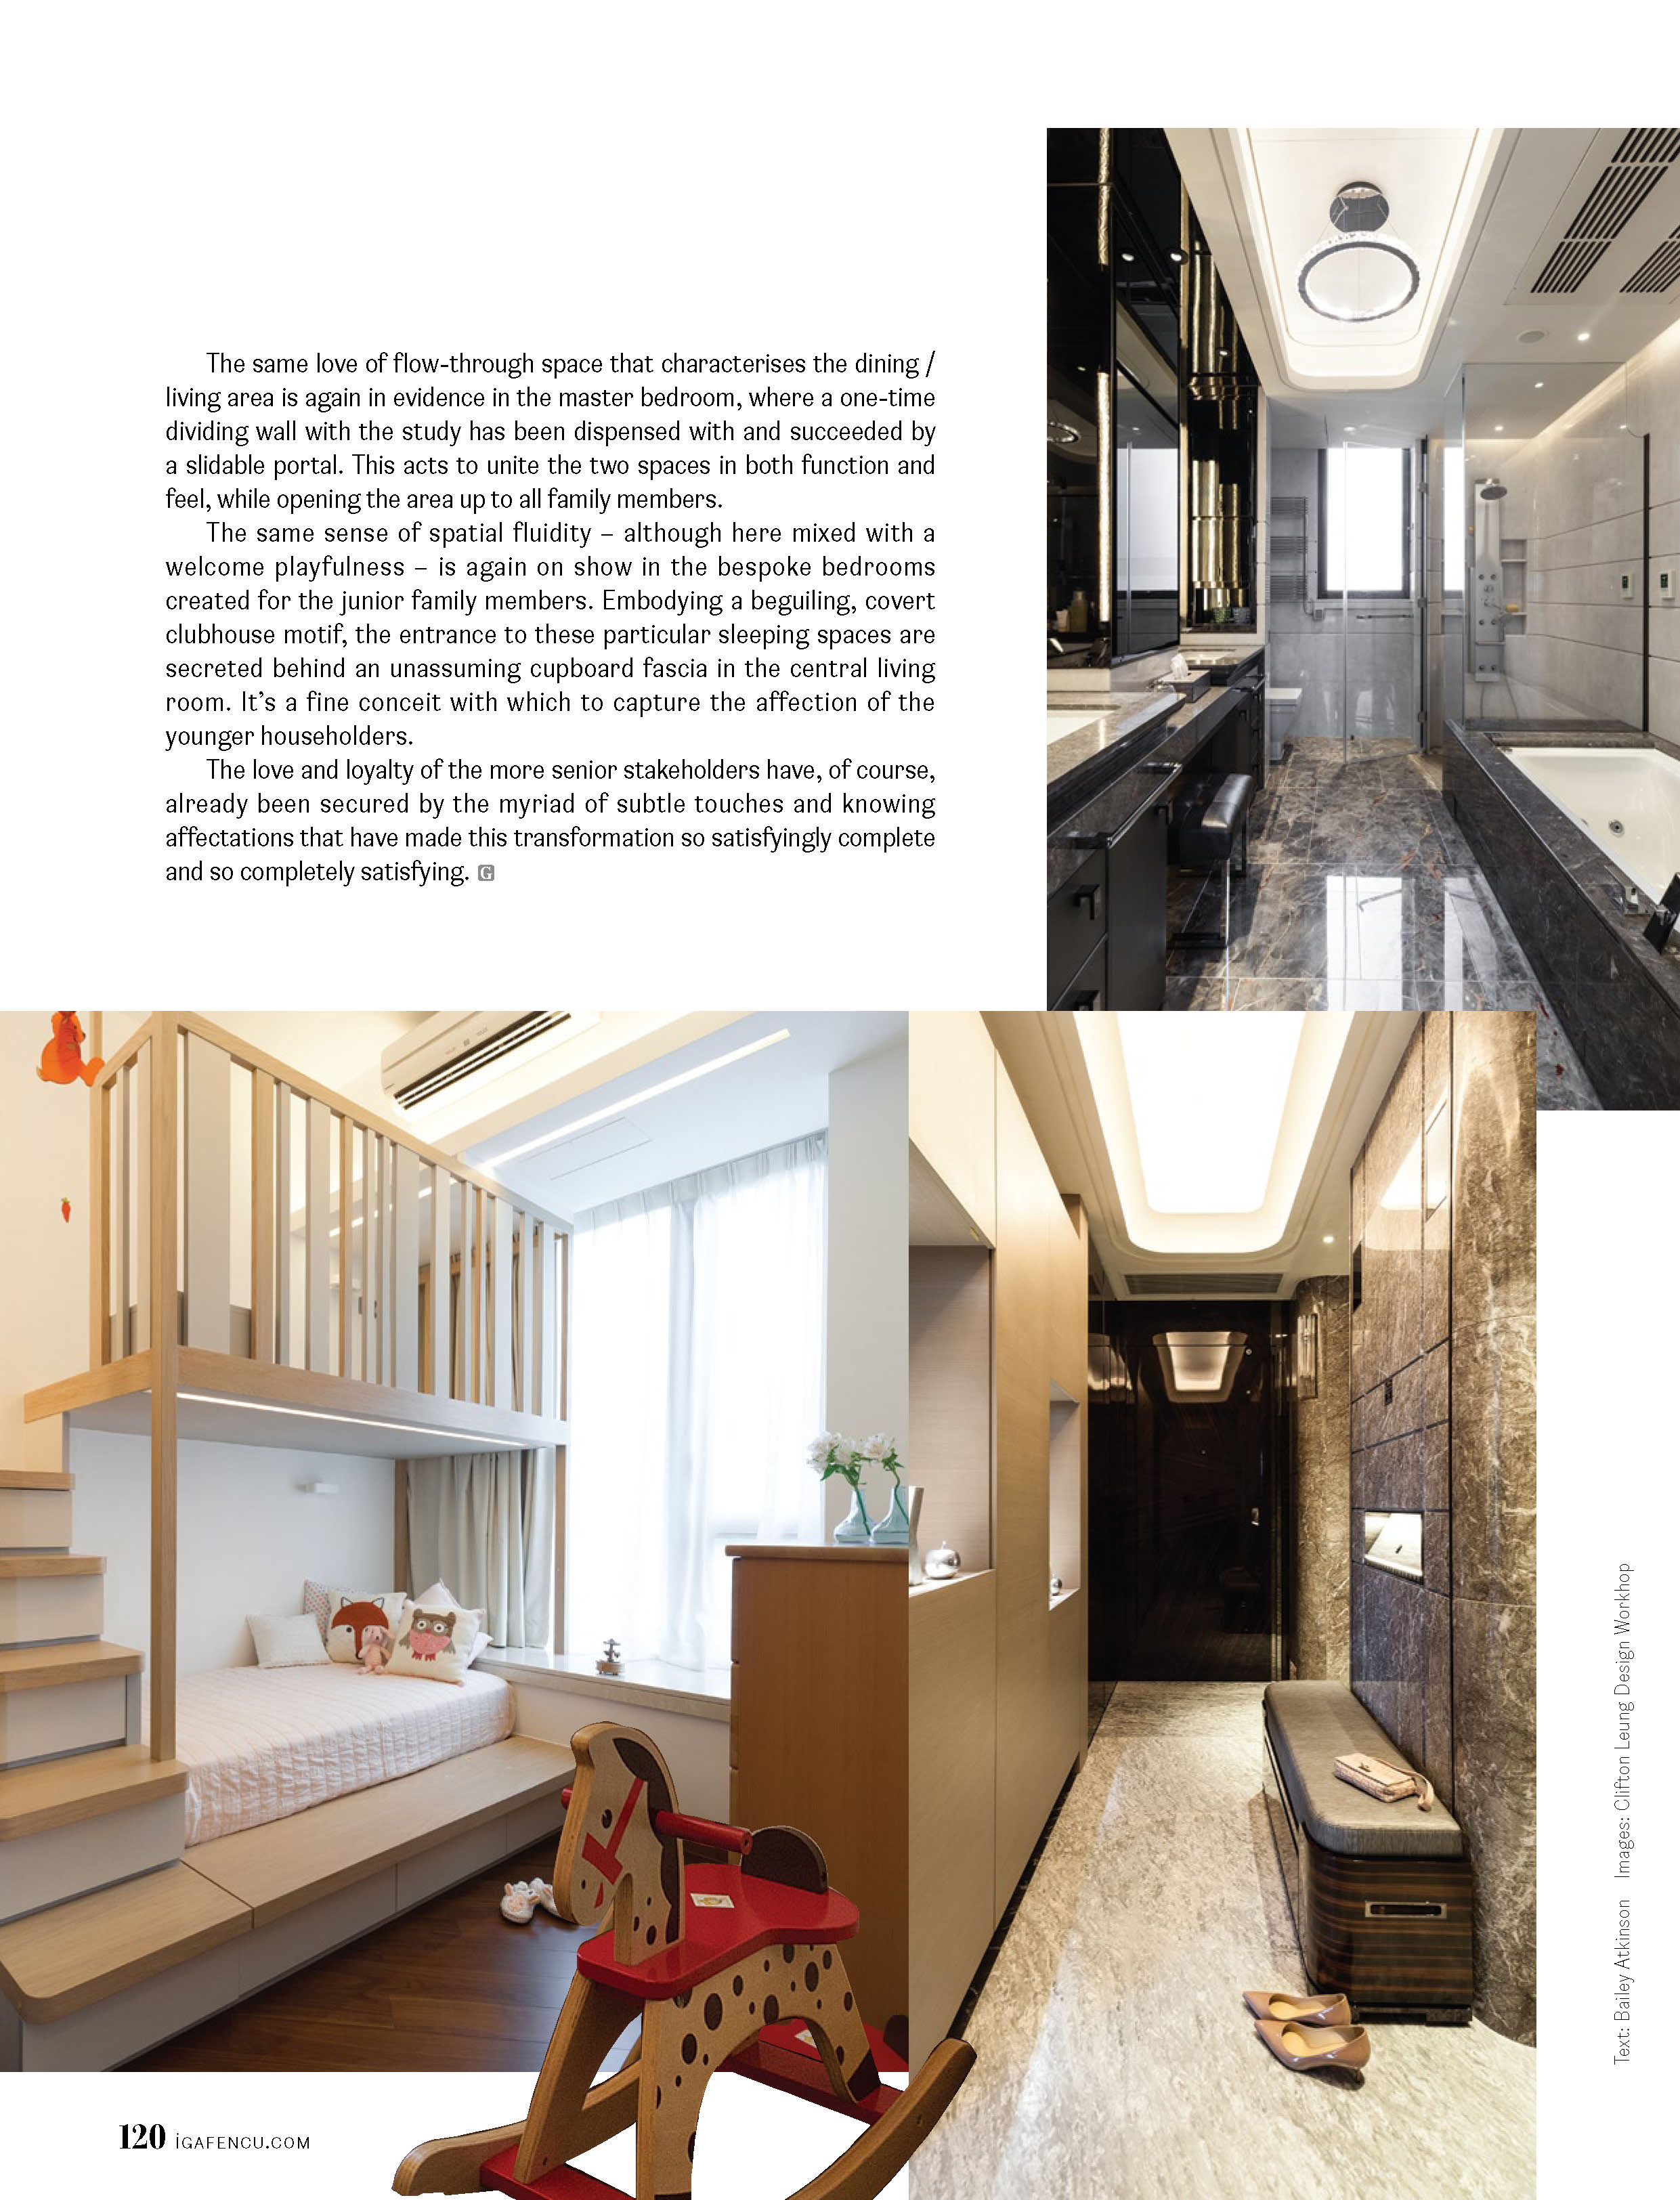 Hotel Style Home | Gafencu | March 2019 Issue - page6